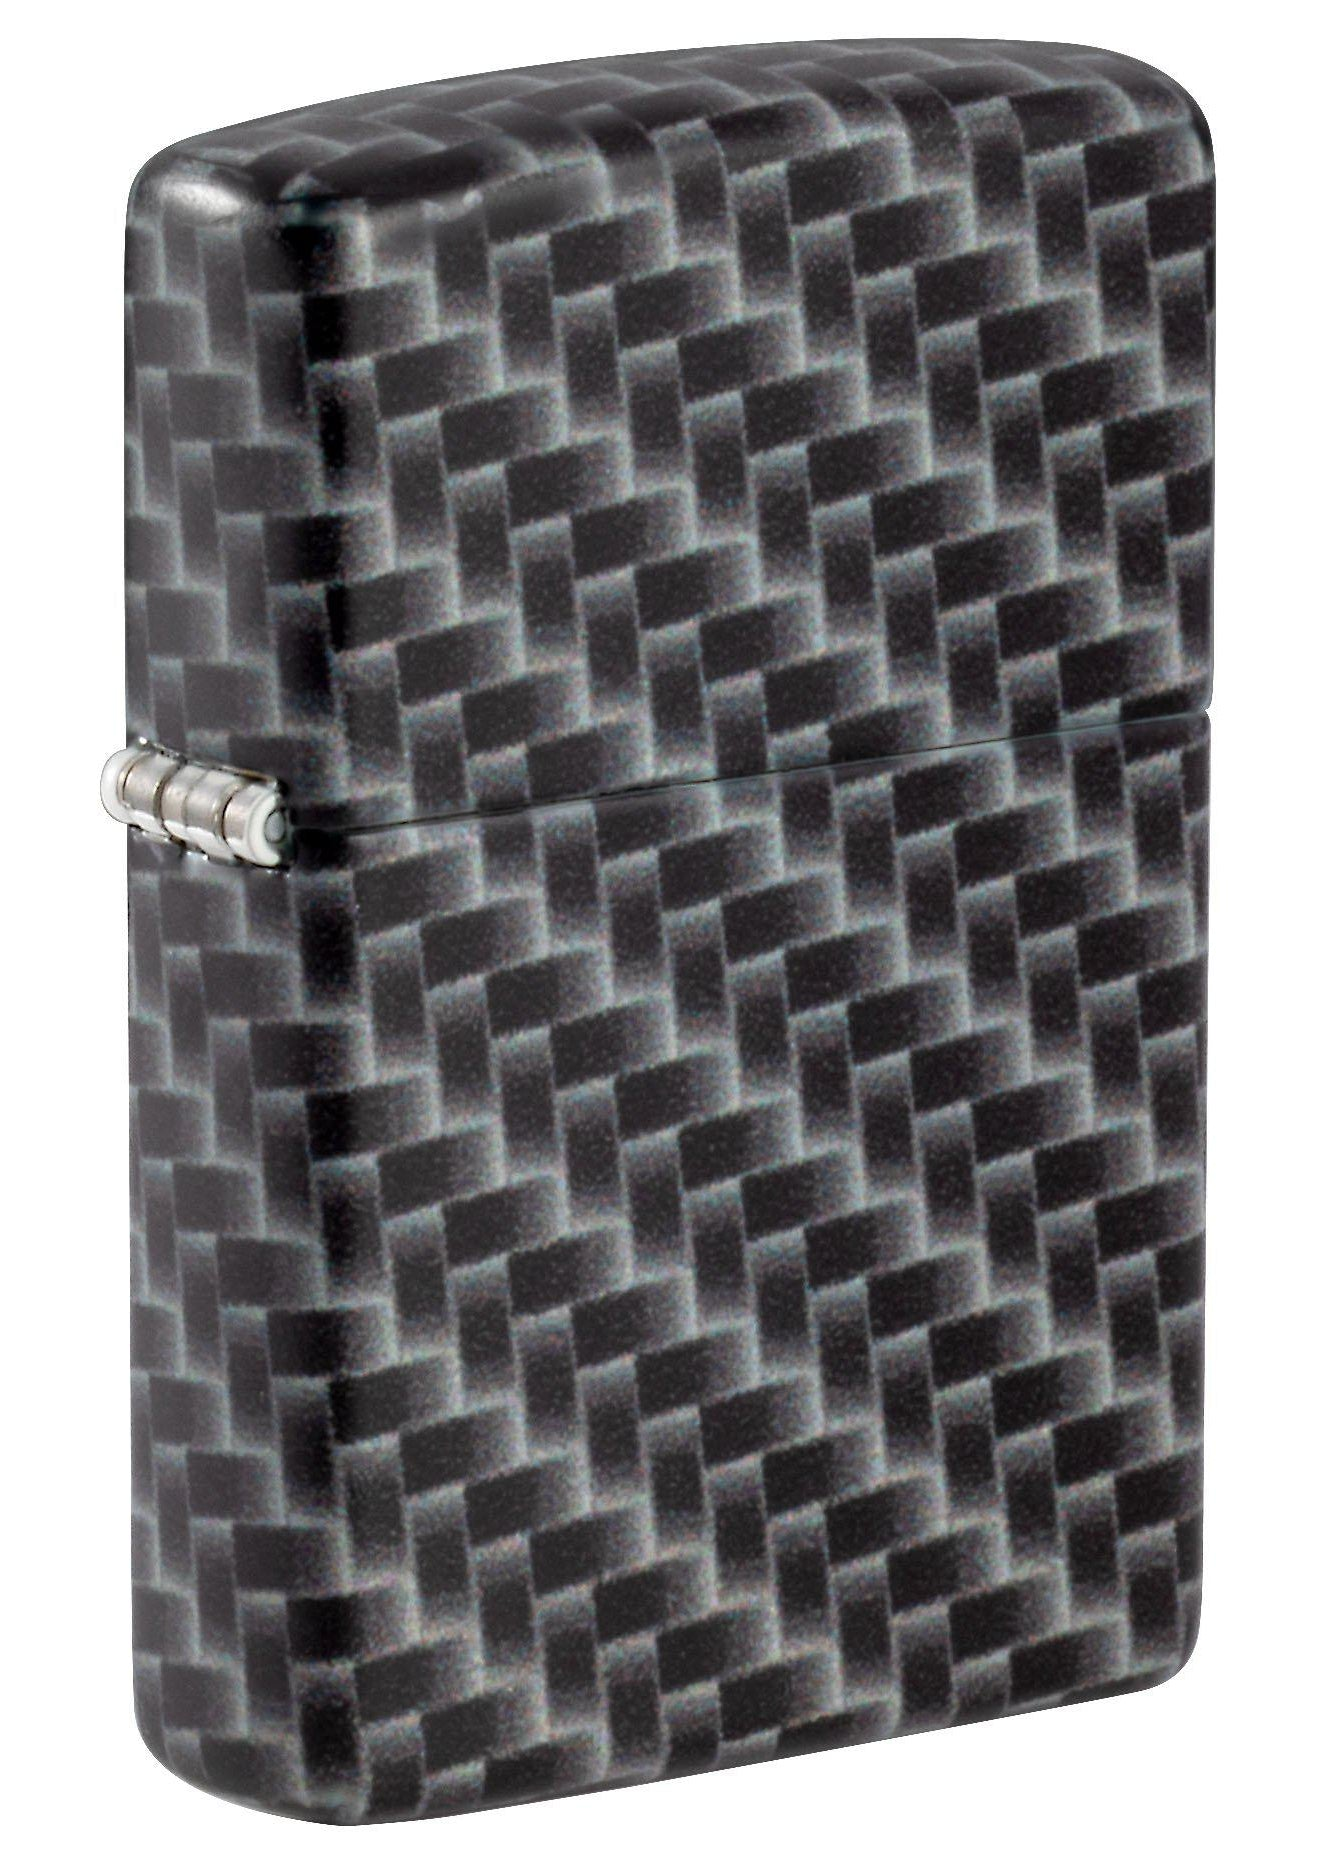 Zippo Lighter: Carbon Fiber, 540 Color - 49356